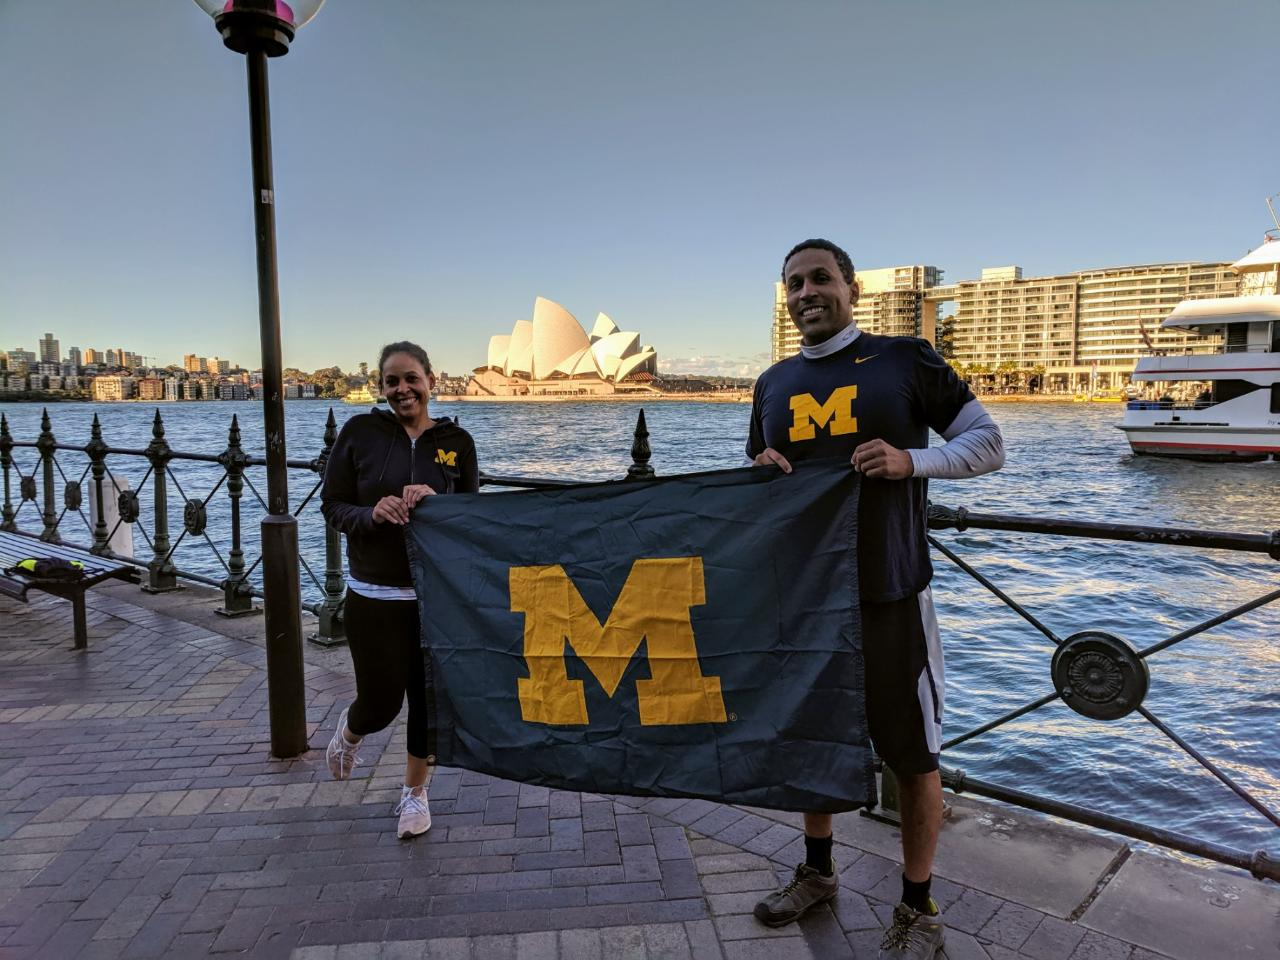 Siblings Dana Rochelle Lee, '03, and Kevin M. Lee, '06, represented the University of Michigan during a trip to Sydney.